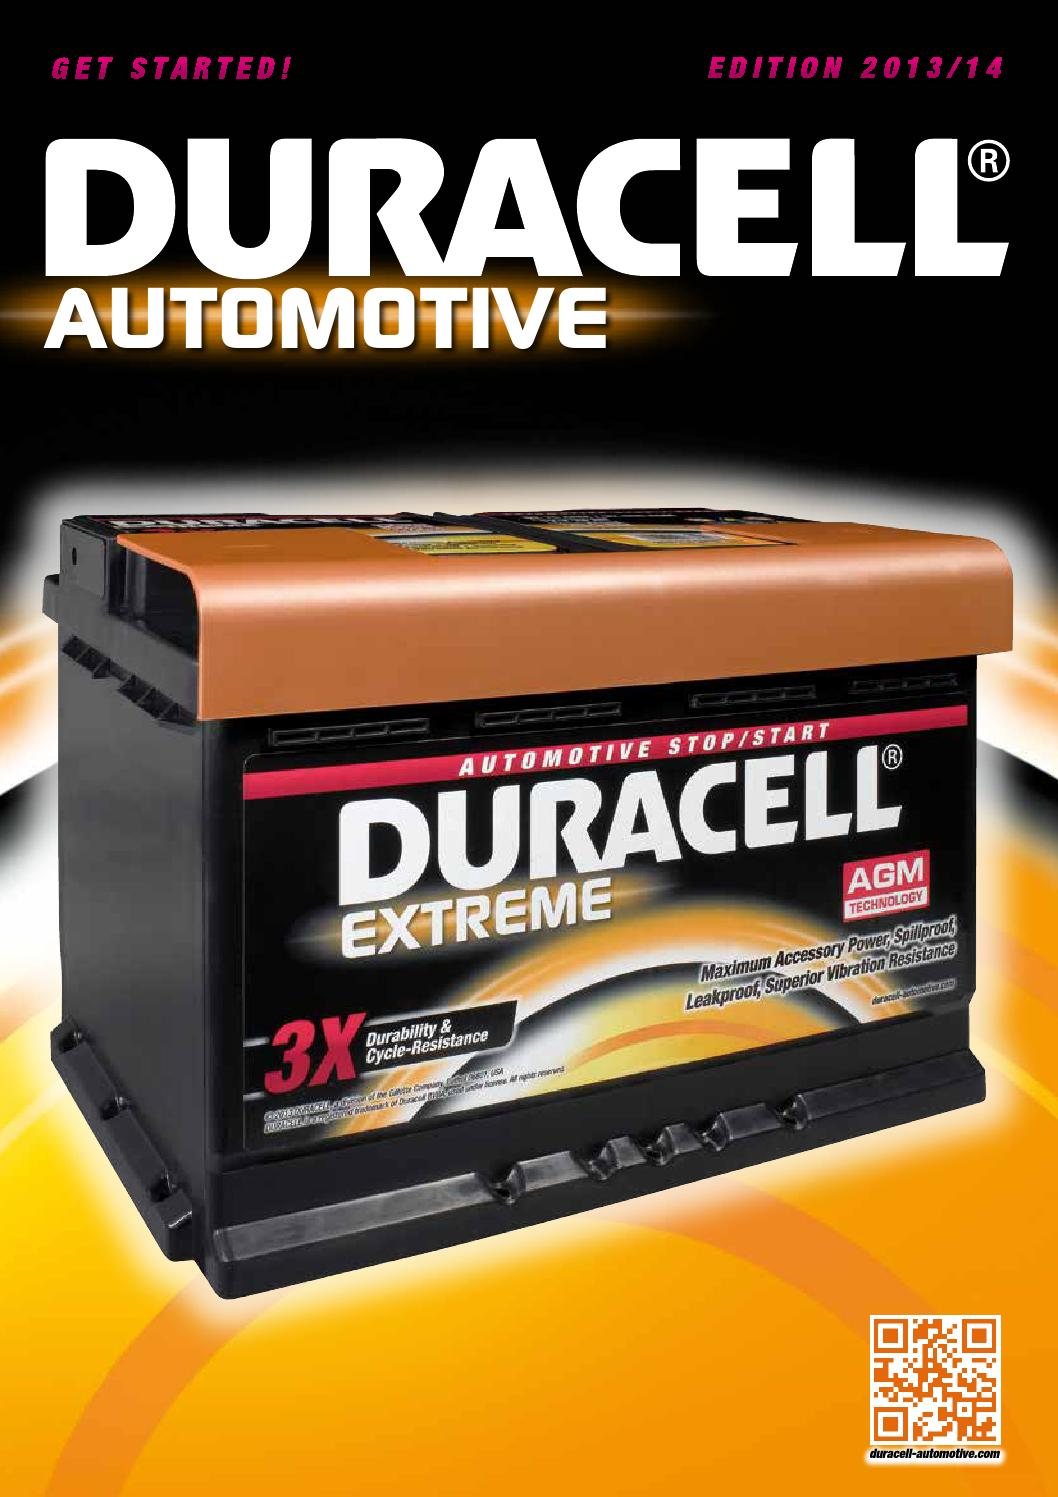 Duracell Catalogus by Mallens Markhorst - issuu